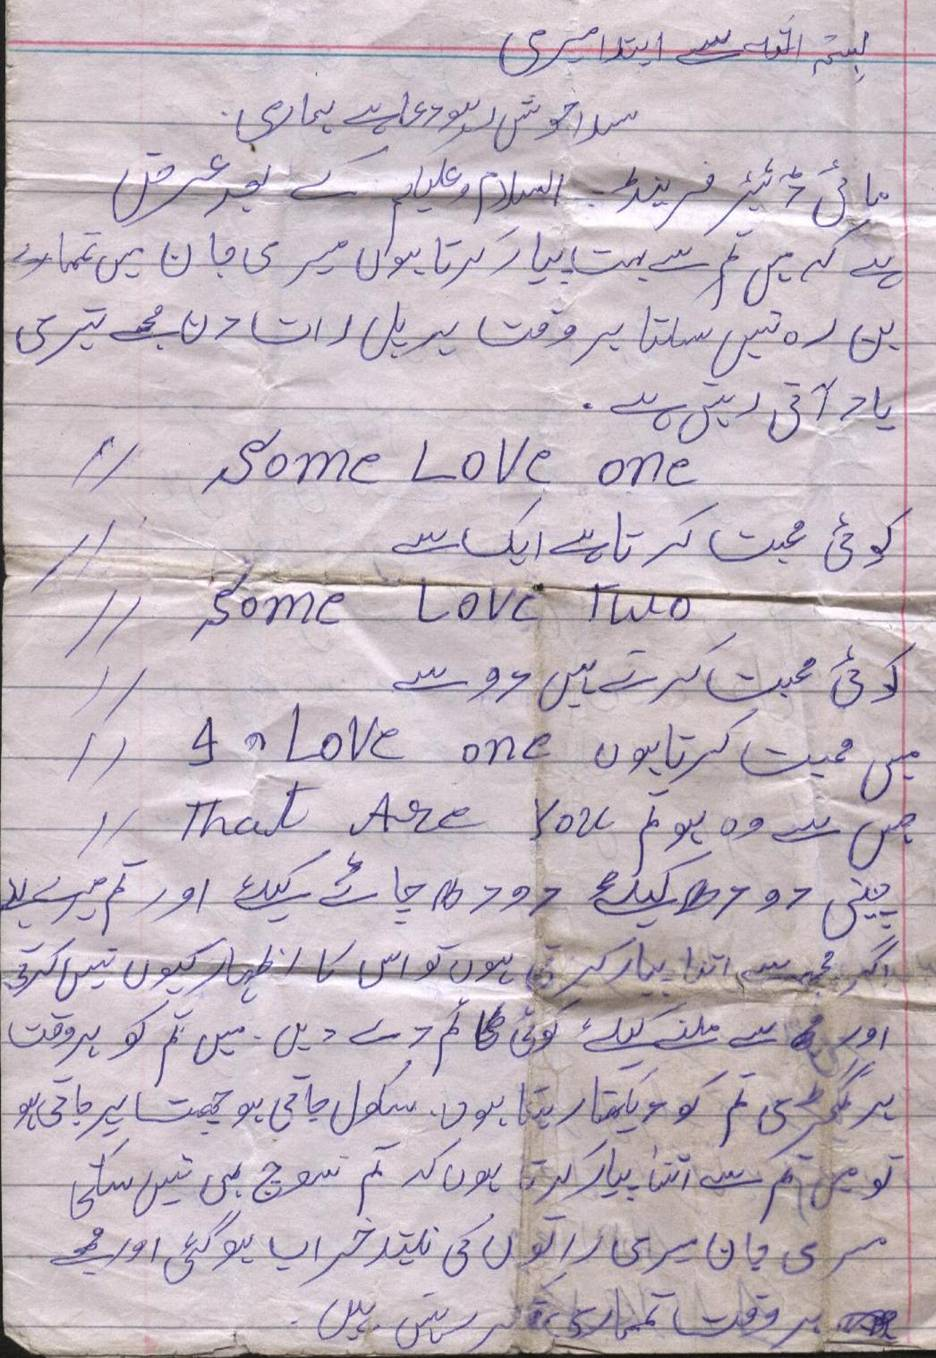 A Typical Love Letter (For Urdu Readers) - XciteFun net